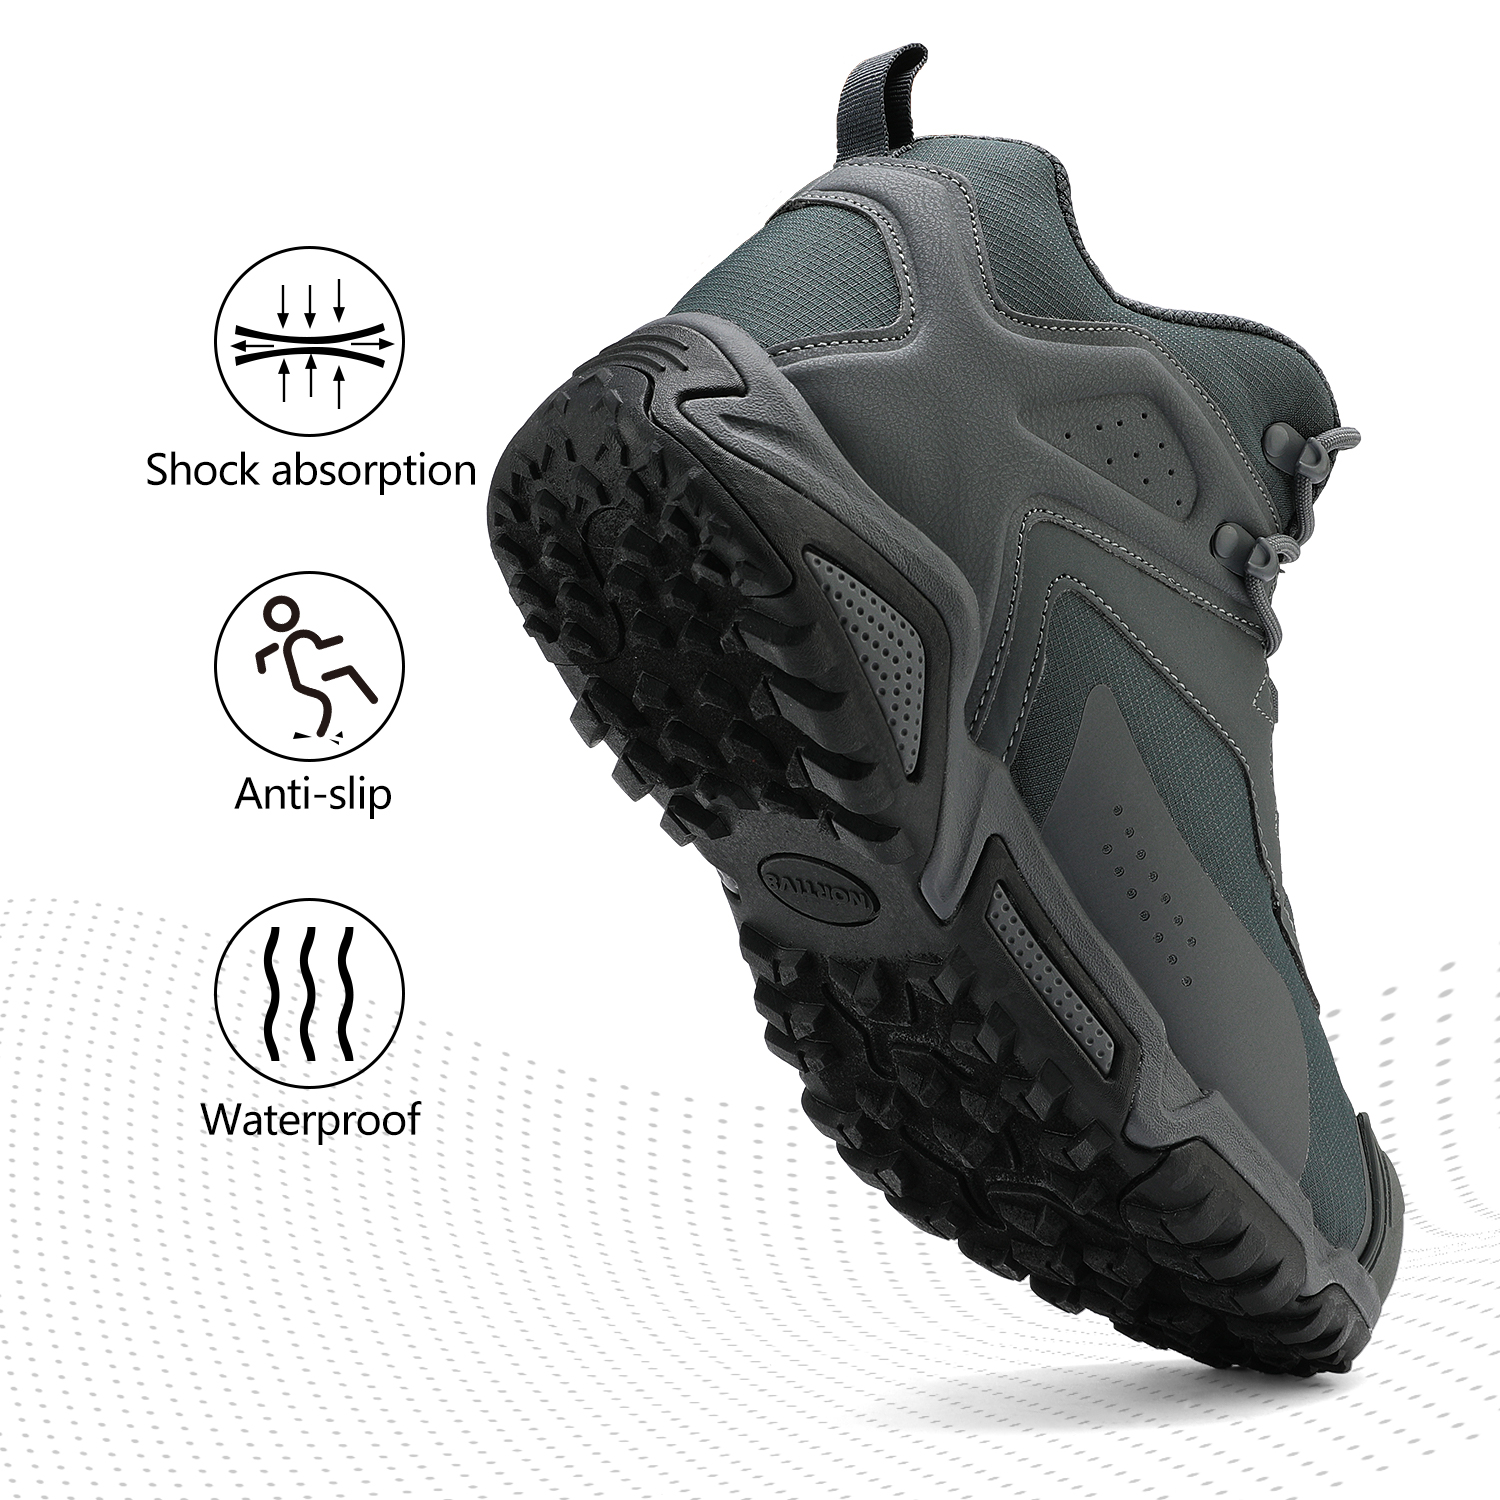 NORTIV-8-Men-039-s-Ankle-Waterproof-Hiking-Boots-Lightweight-Backpacking-Work-Shoes thumbnail 19